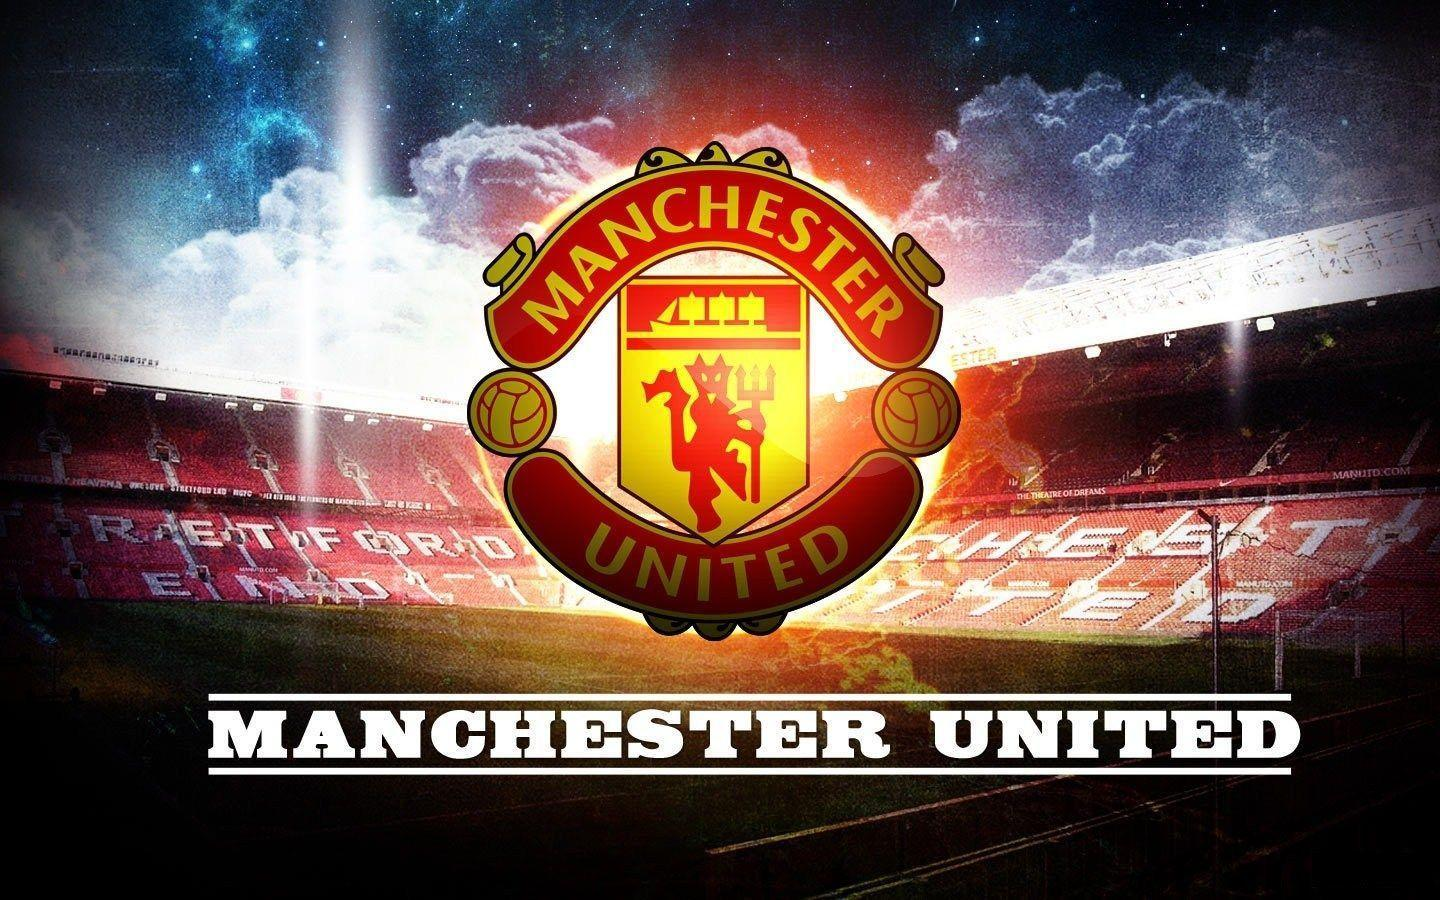 Manchester United 2018 Wallpapers 1440x900